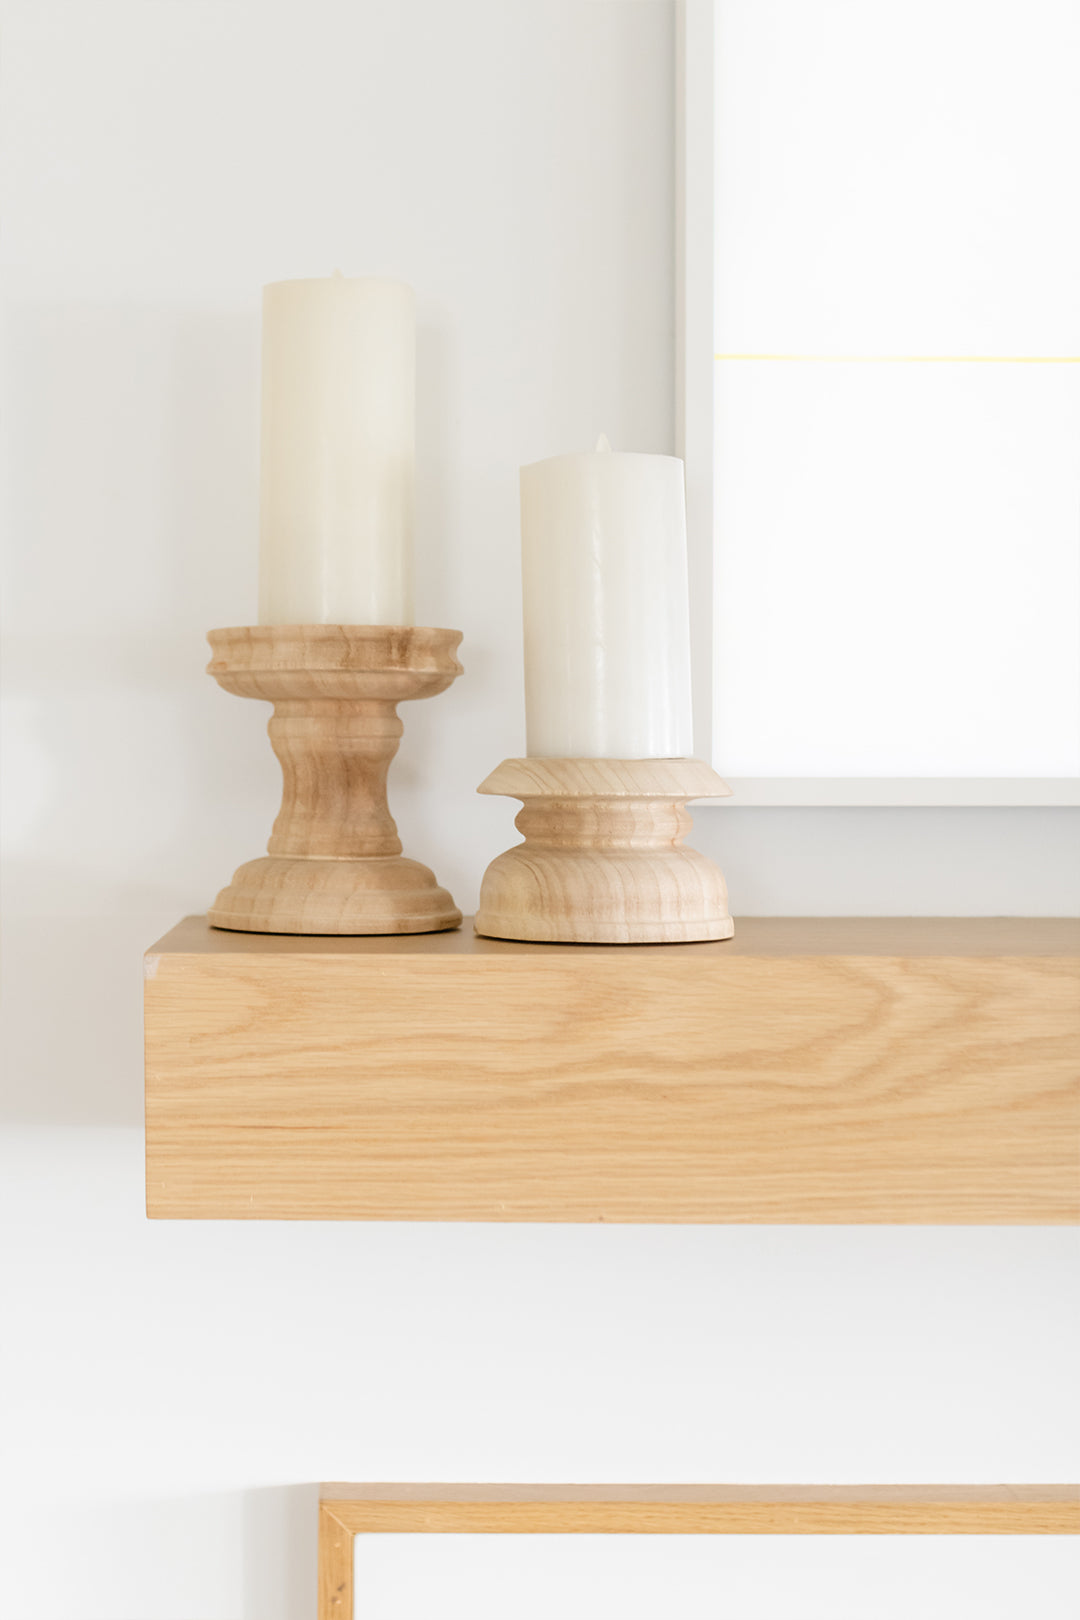 natural wooden candlesticks